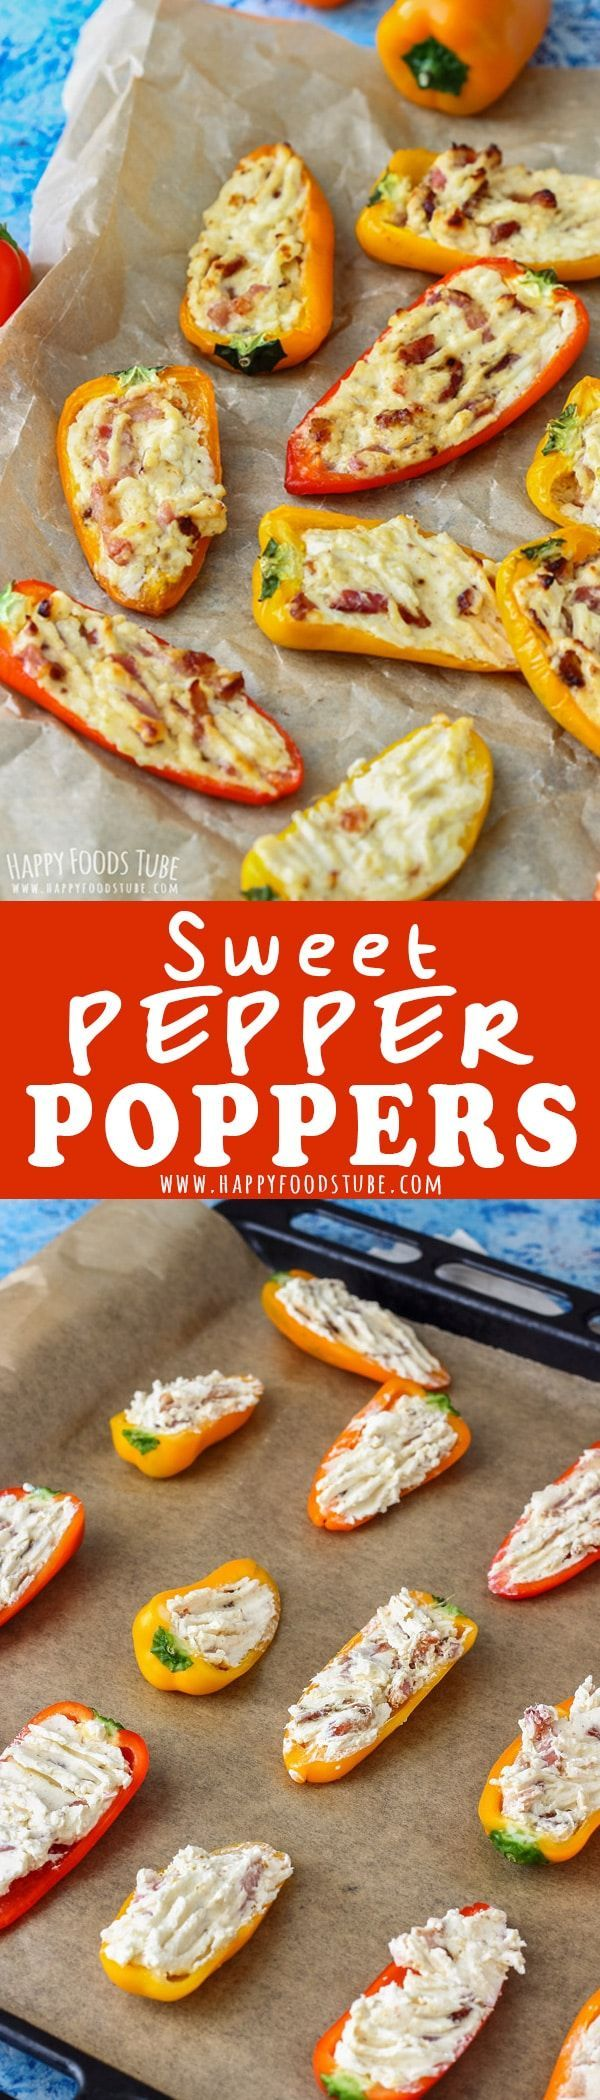 These Sweet Pepper Poppers are the perfect appetizers for parties and family gatherings. Ready in 30 minutes this oven baked party food is easy to make and tastes amazing. #pepper #poppers #party #food #recipe #bacon #cheese #stuffed #appetizers via @happyfoodstube